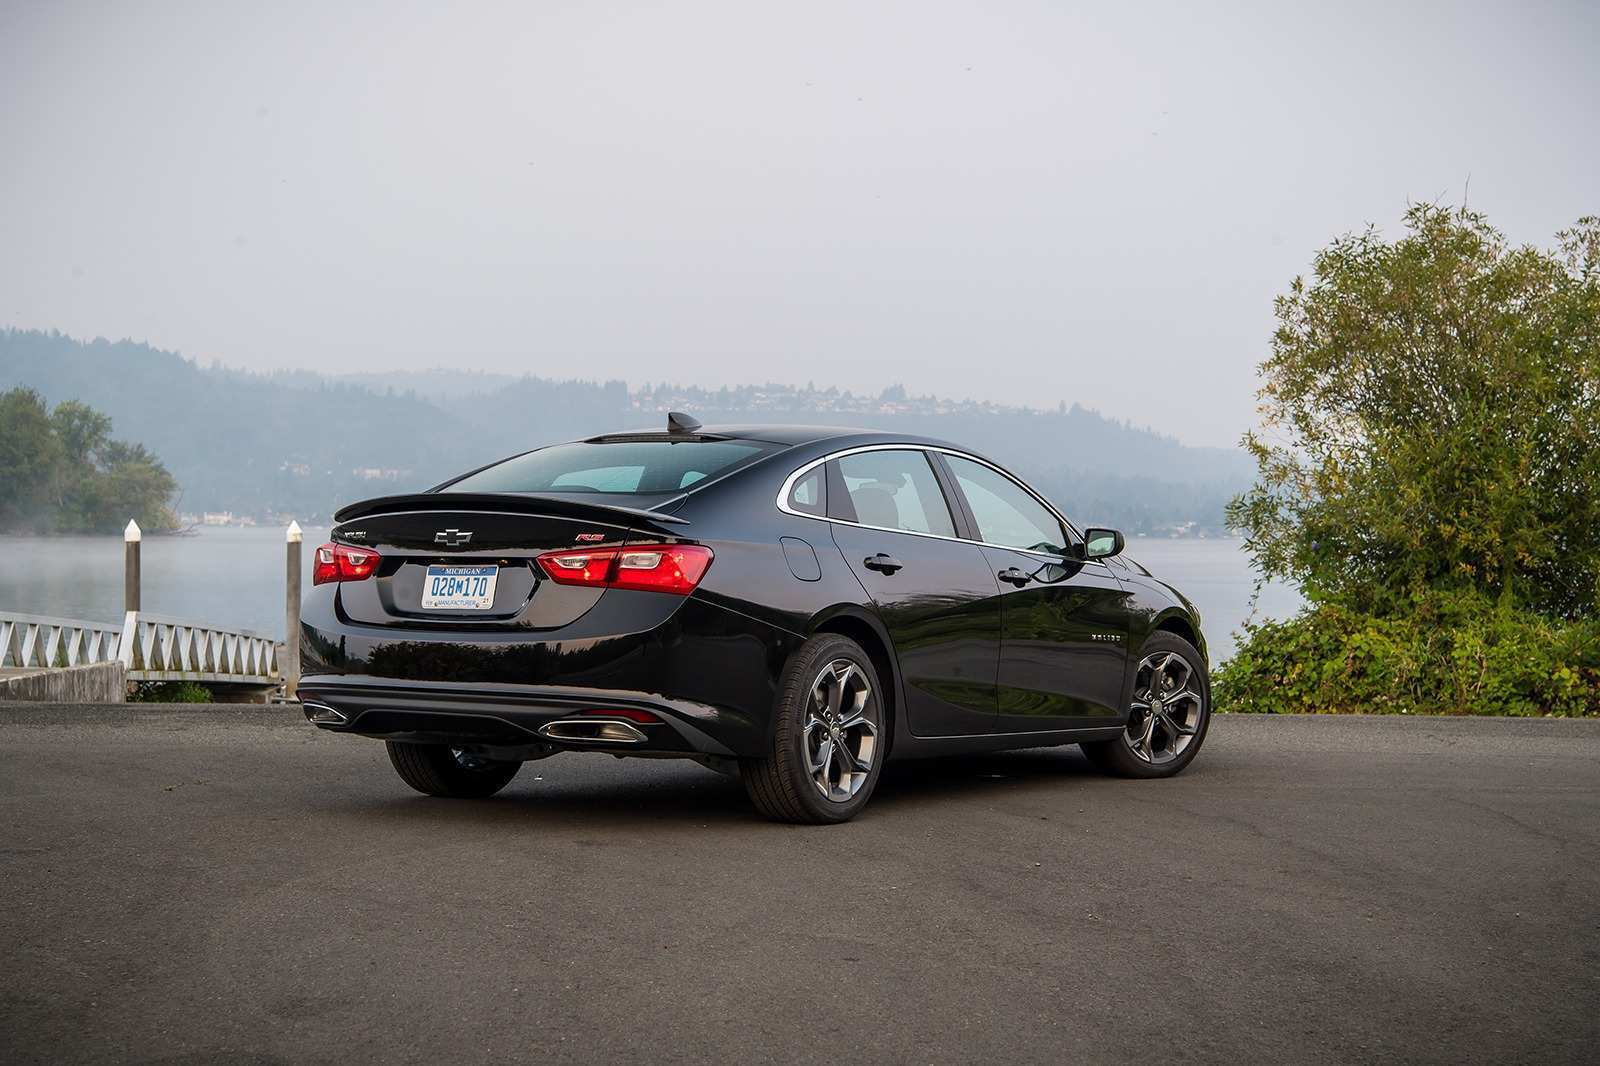 68 The New Chevrolet Malibu 2019 Release Date Exterior And Interior Review Interior with New Chevrolet Malibu 2019 Release Date Exterior And Interior Review